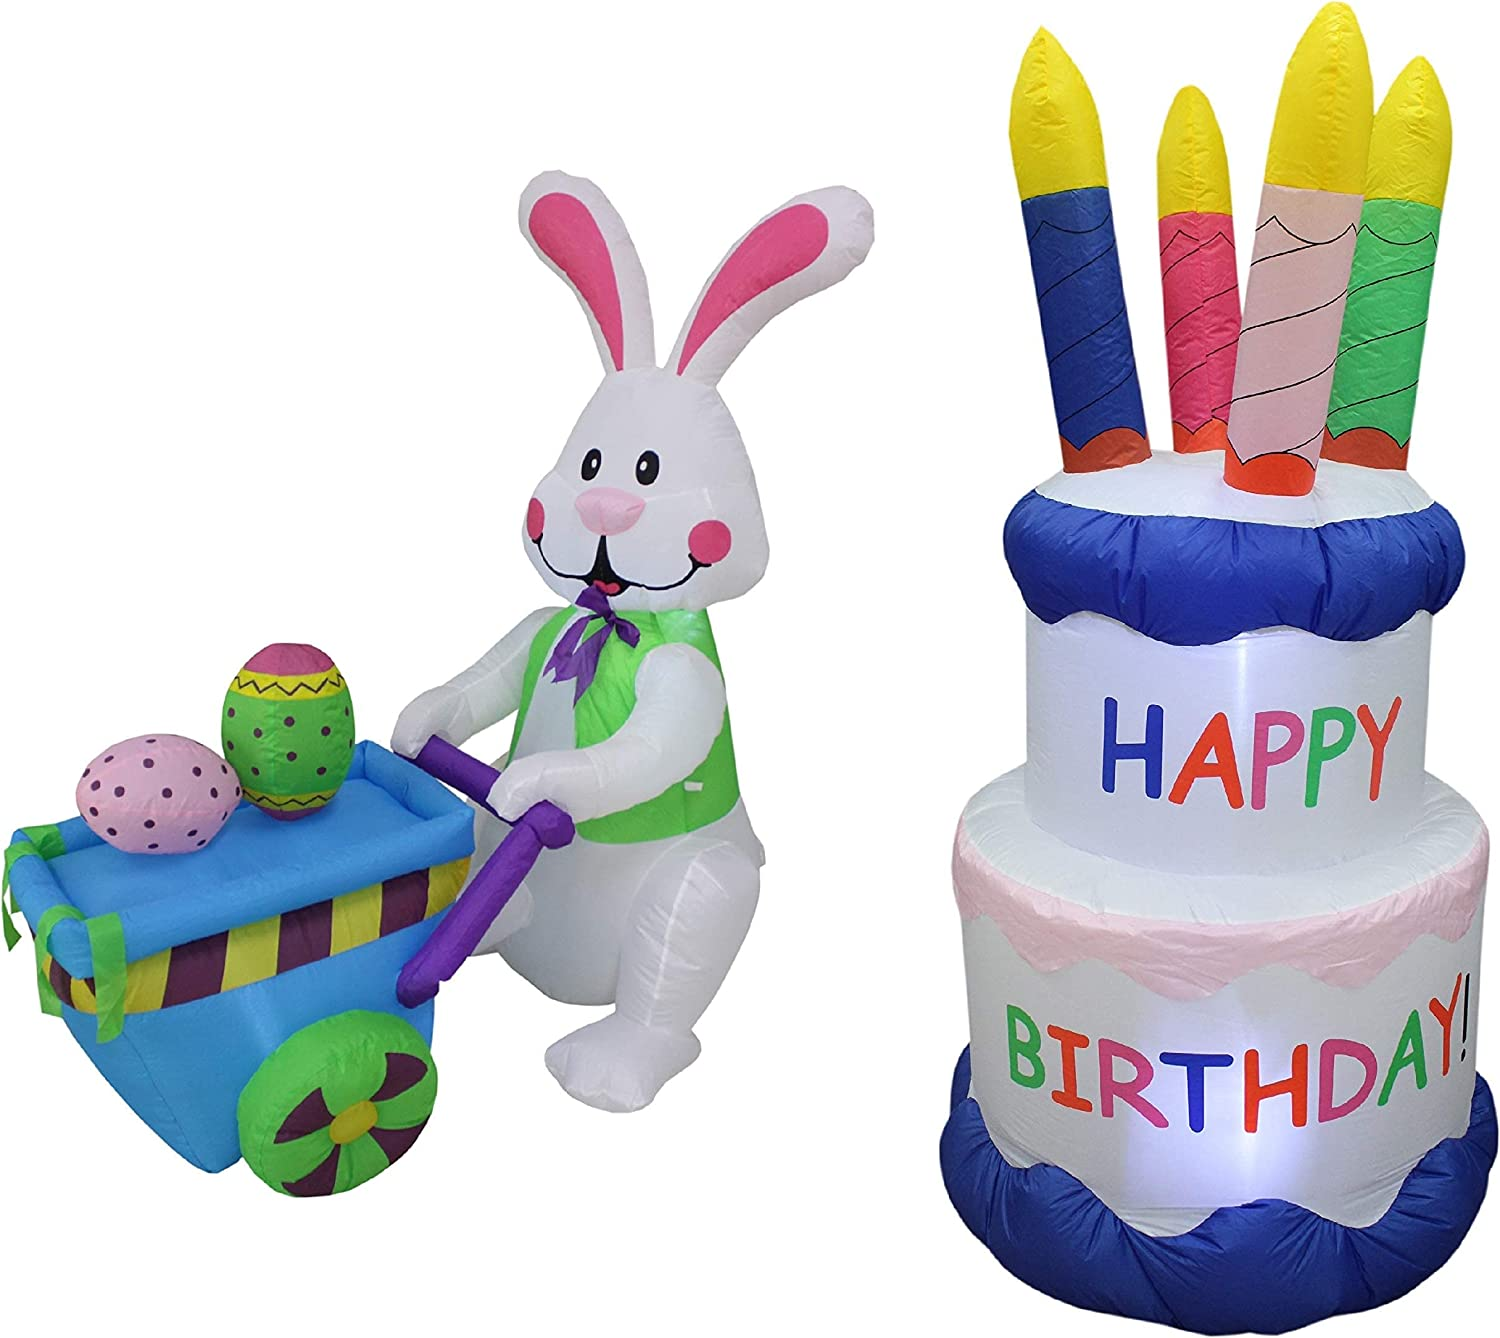 BZB Goods New York Mall Two Easter and Bundle Super-cheap Birthday Party Decorations Incl